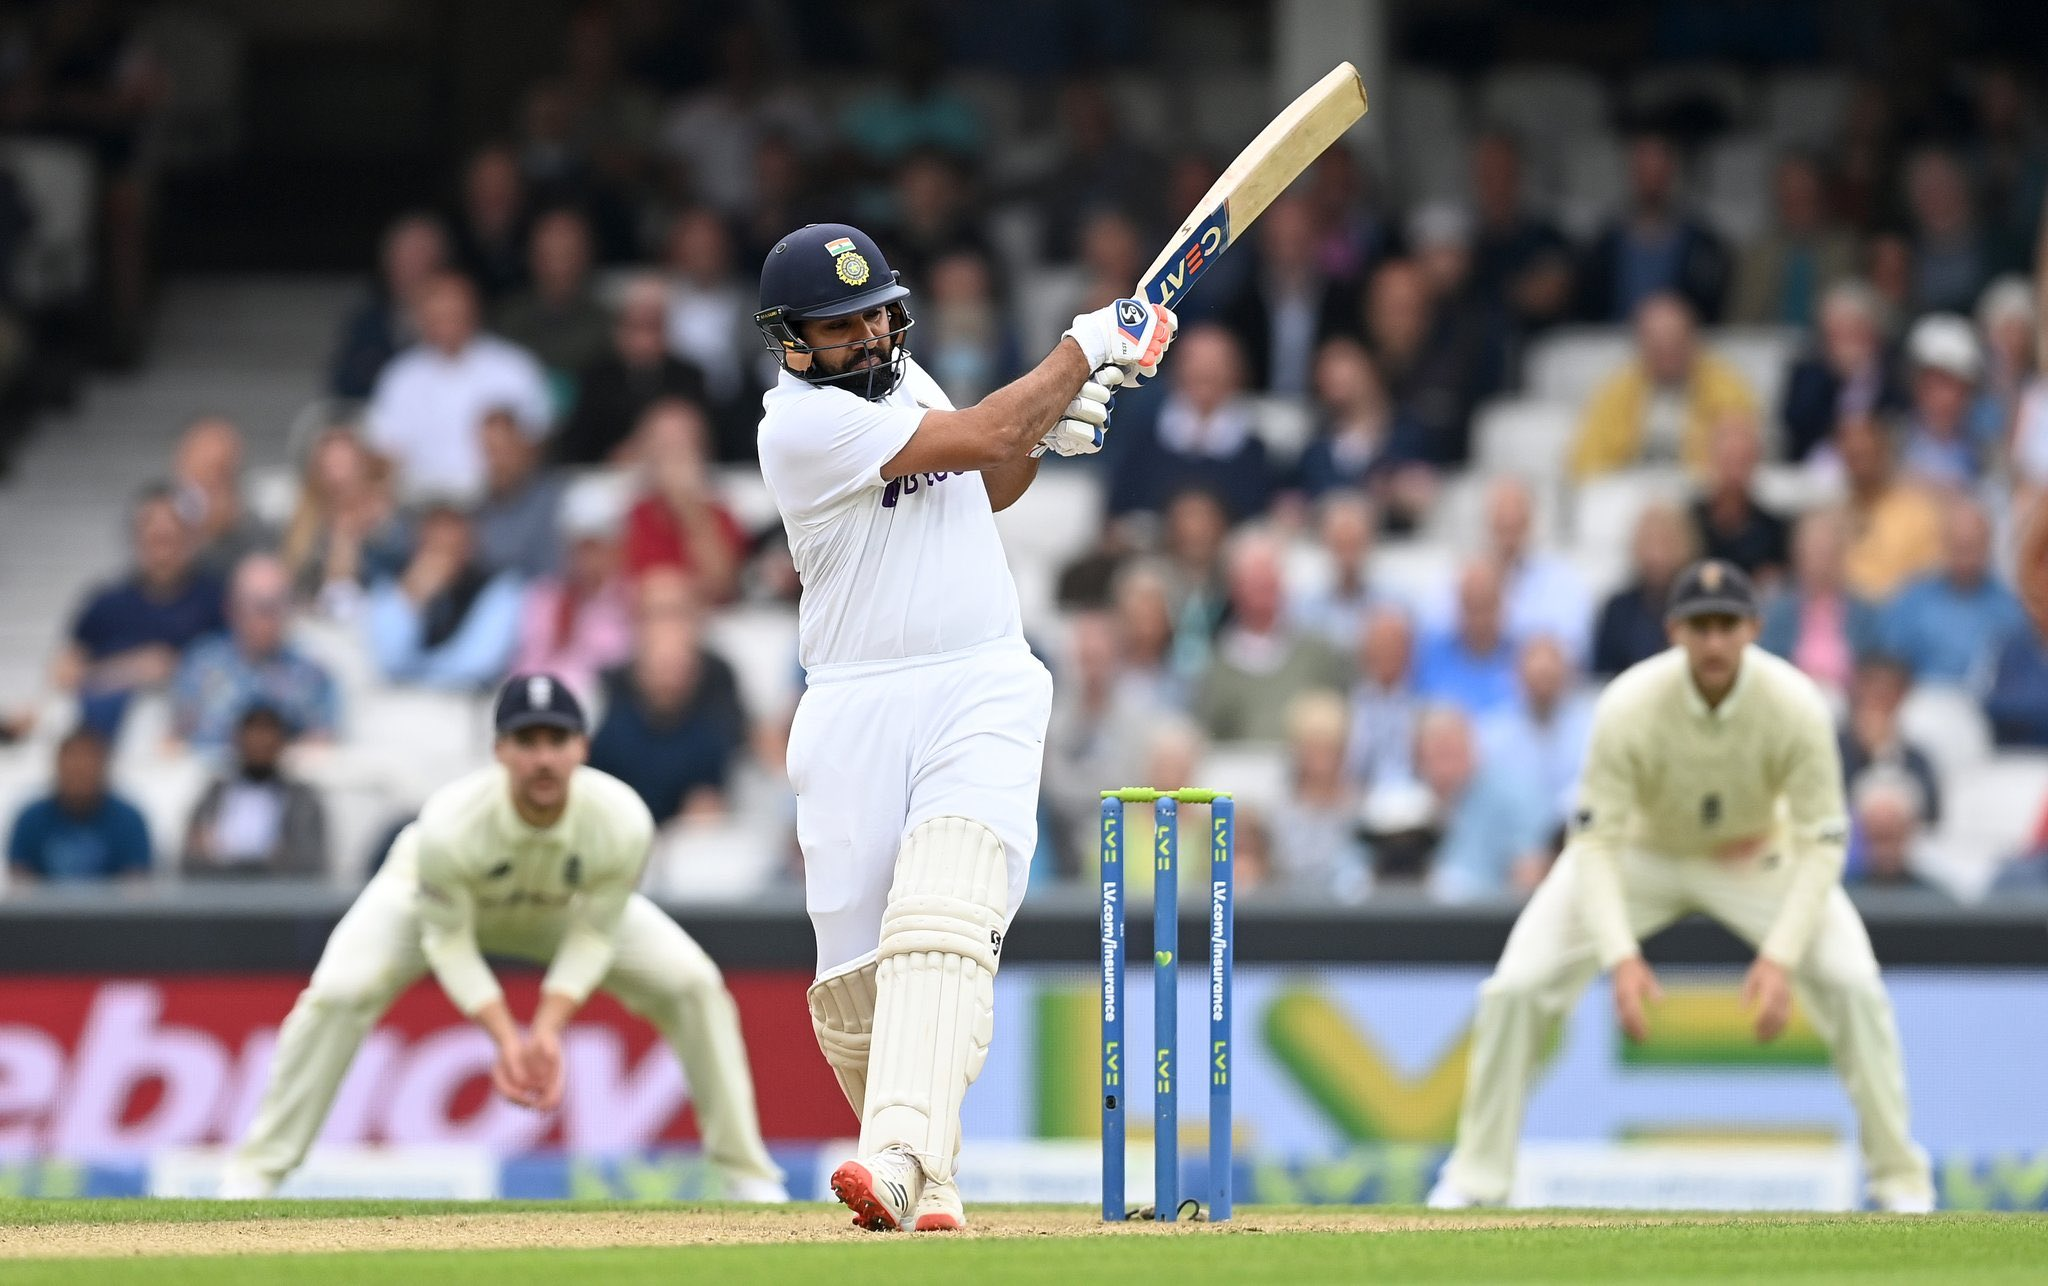 IND vs ENG Oval Test: Rohit Sharma en route first overseas Test century